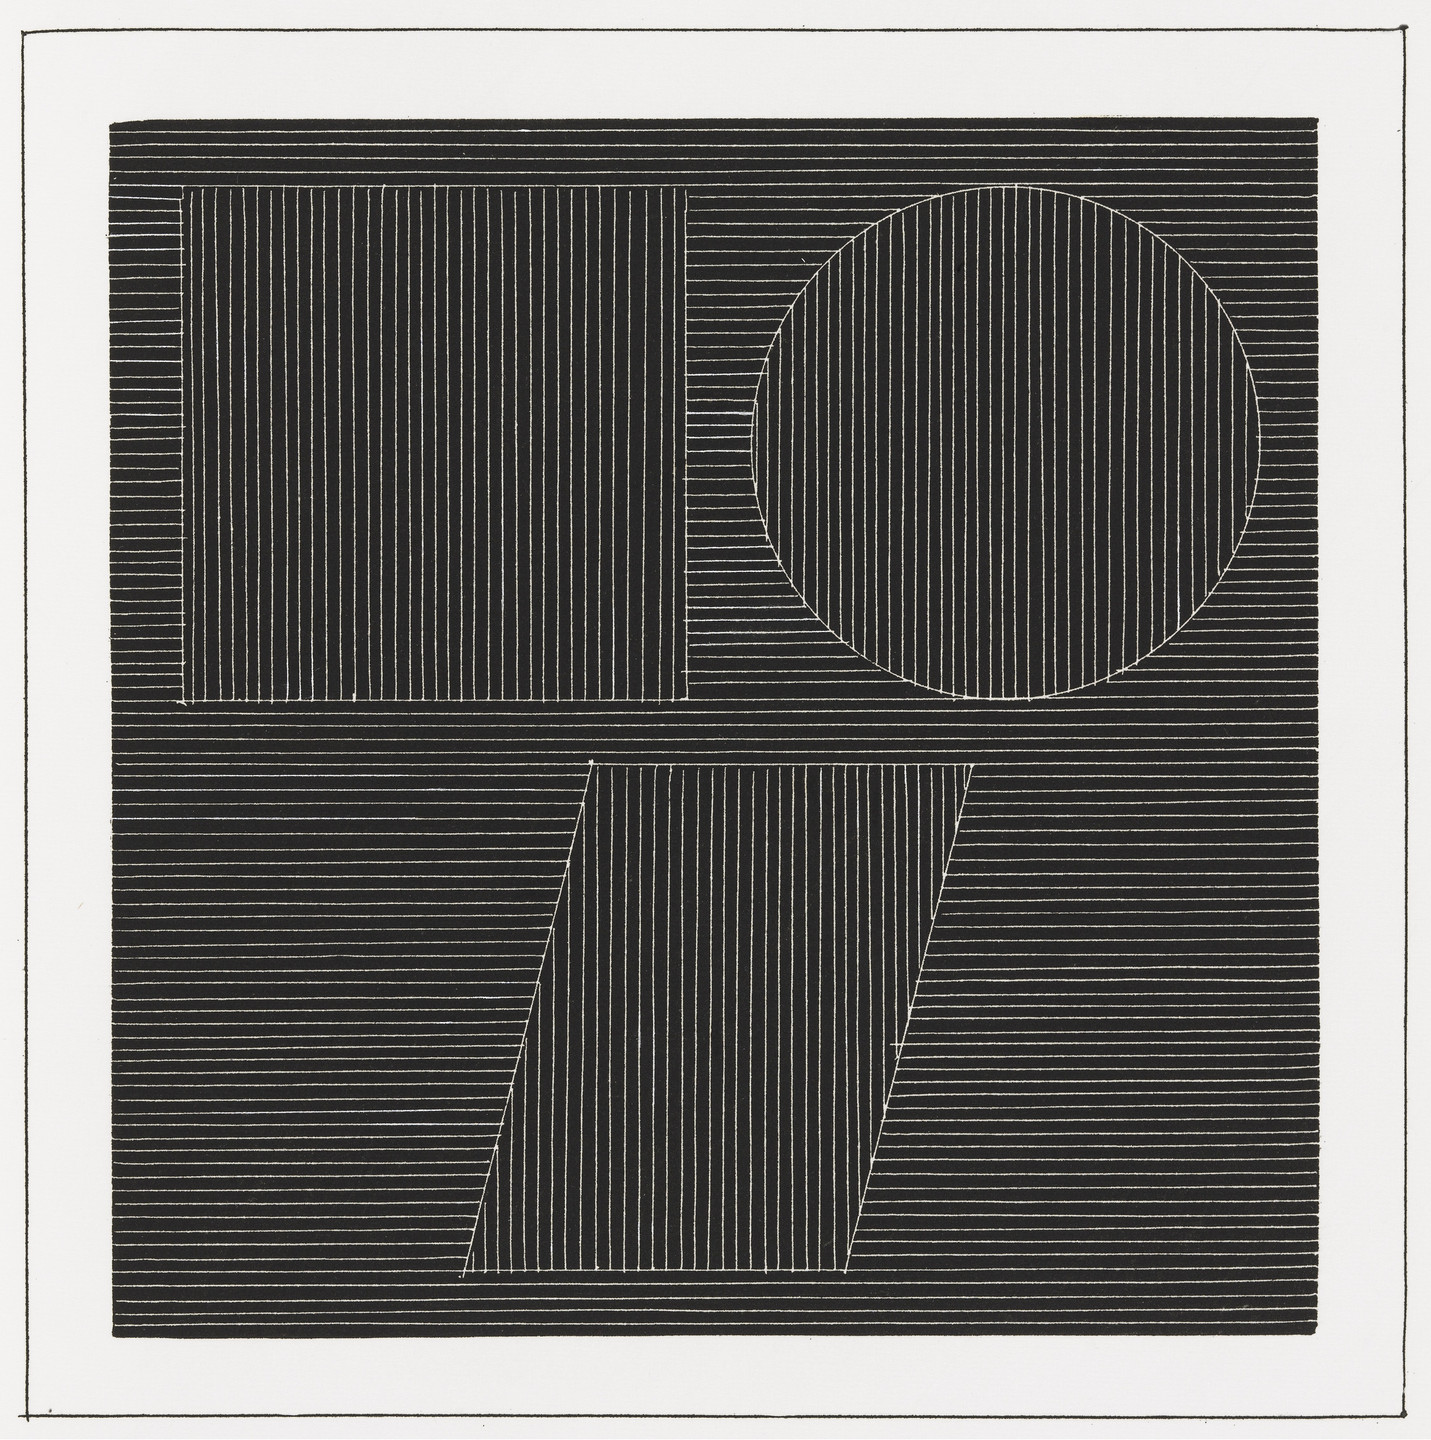 Sol LeWitt. Plate (folio 26) from Six Geometric Figures and All Their Combinations, Volume I. 1980